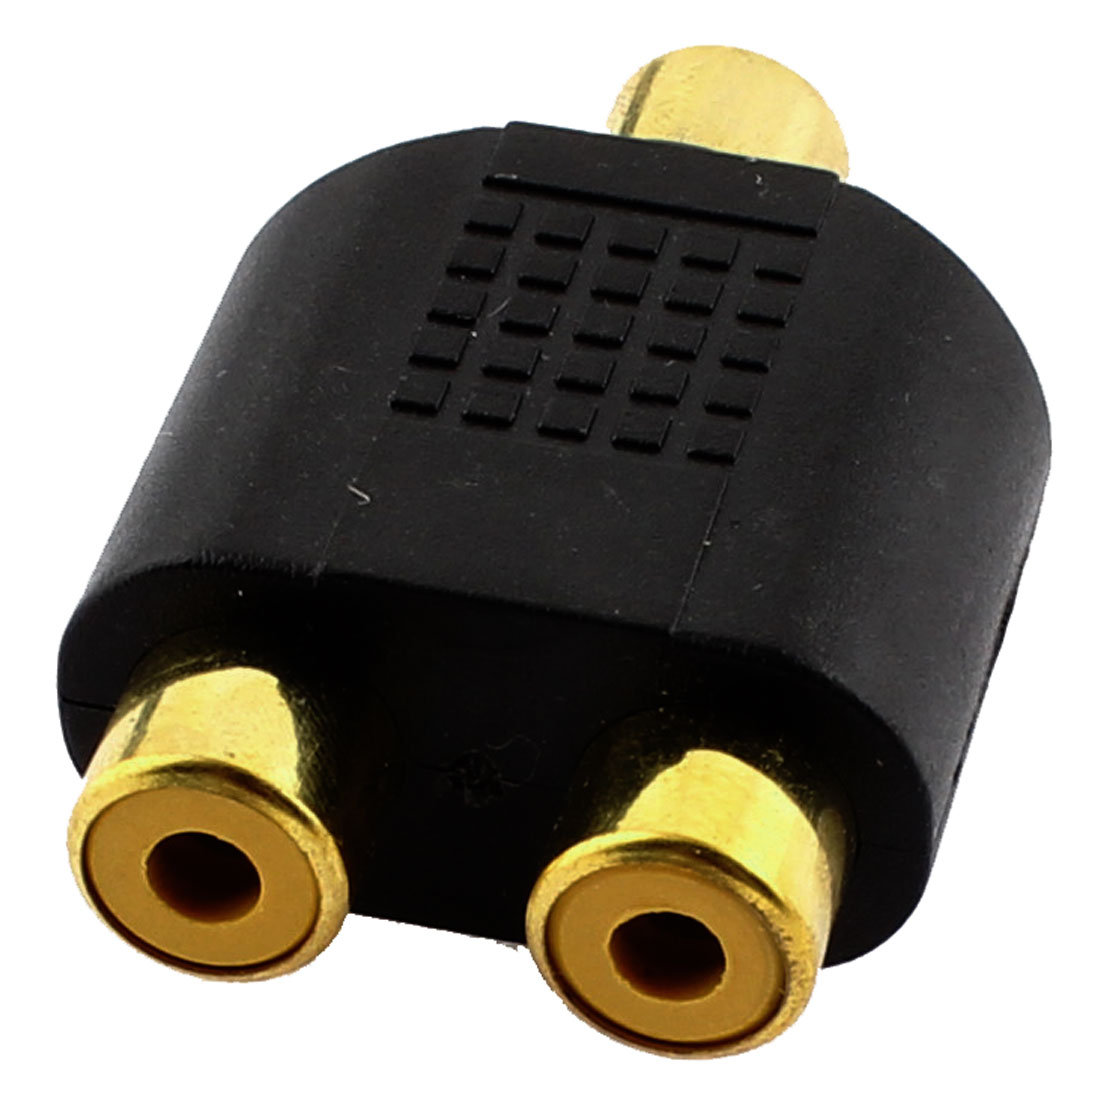 RCA Female to Dual RCA Female Jack Splitter Video Audio Adapter Connector Converter